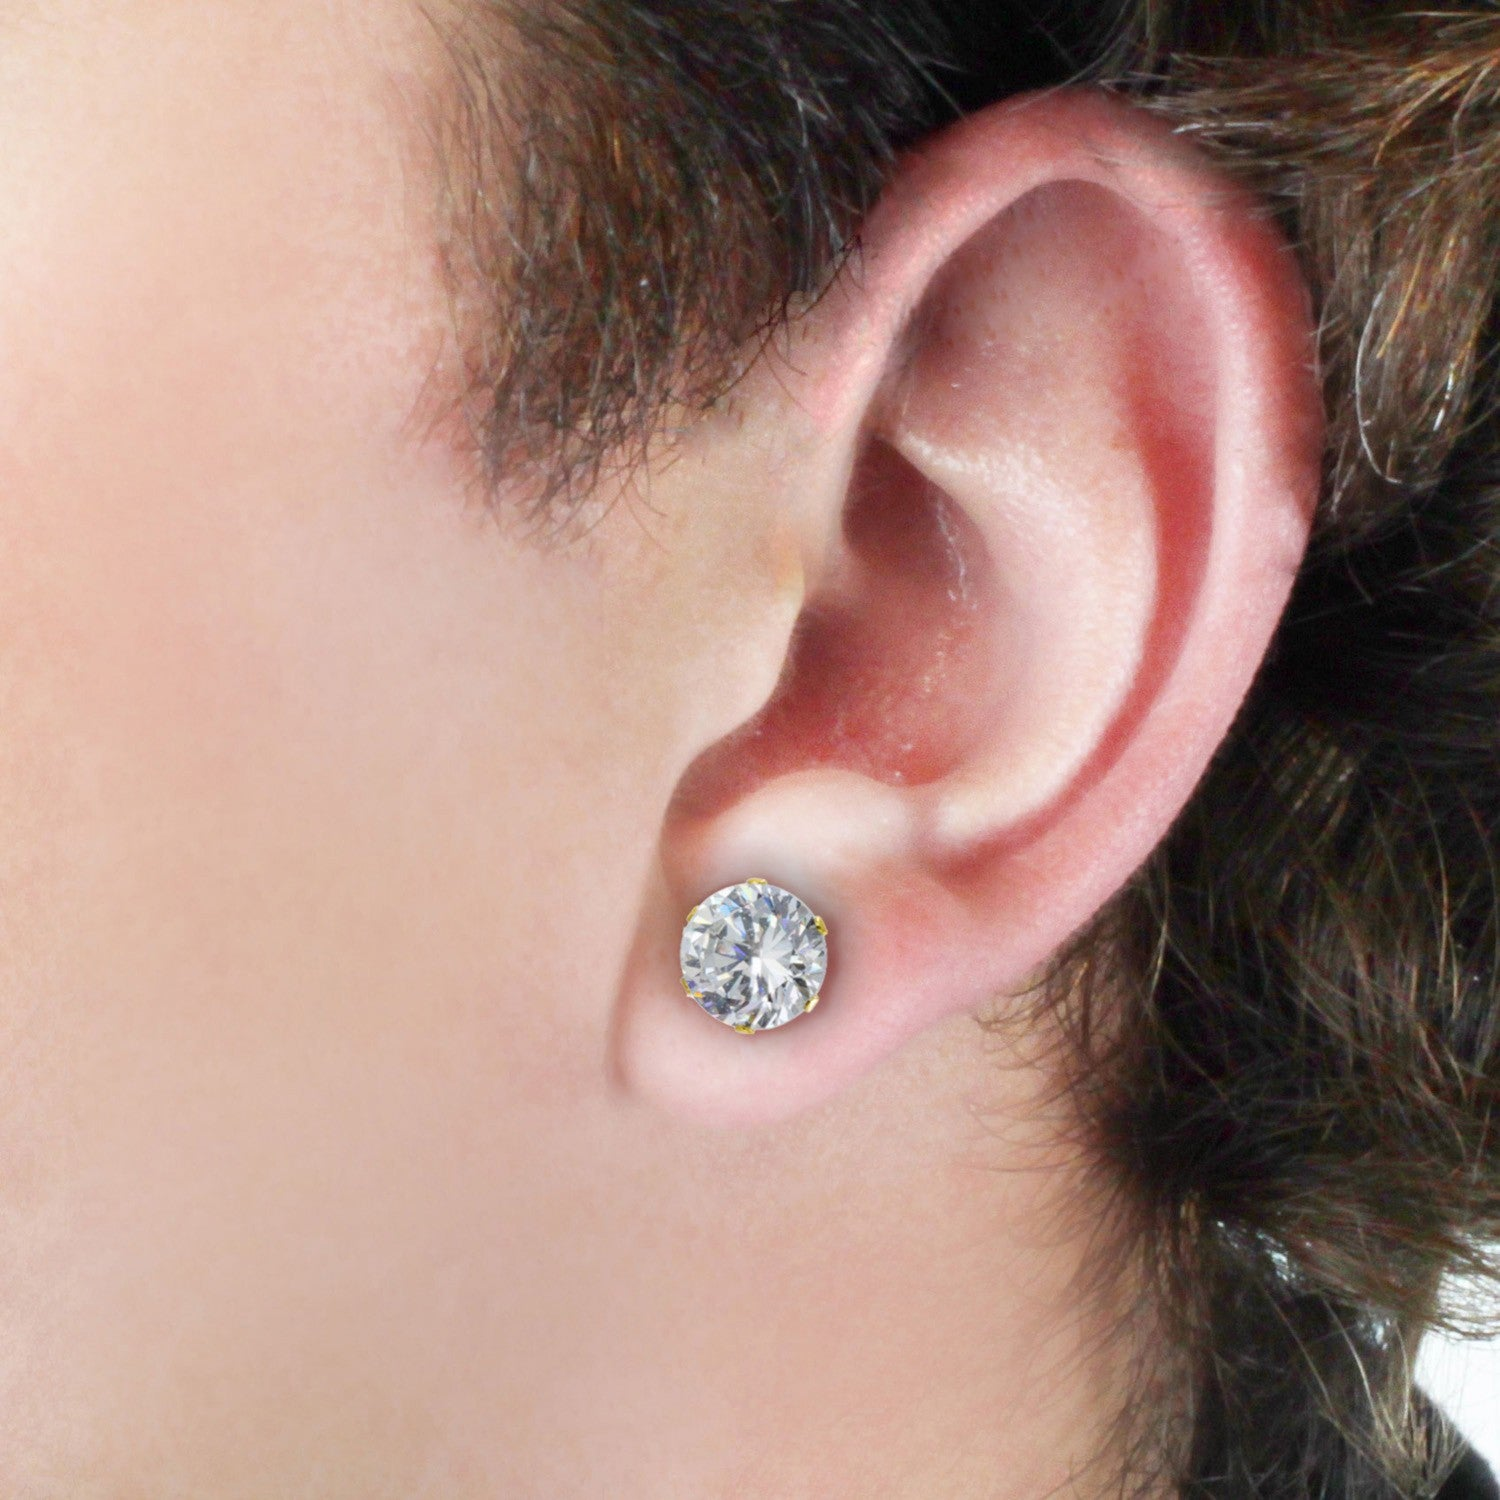 Gold Plated Steel 8mm Cubic Zirconia Stud Earrings White Free Shipping On Orders Over 45 6237887